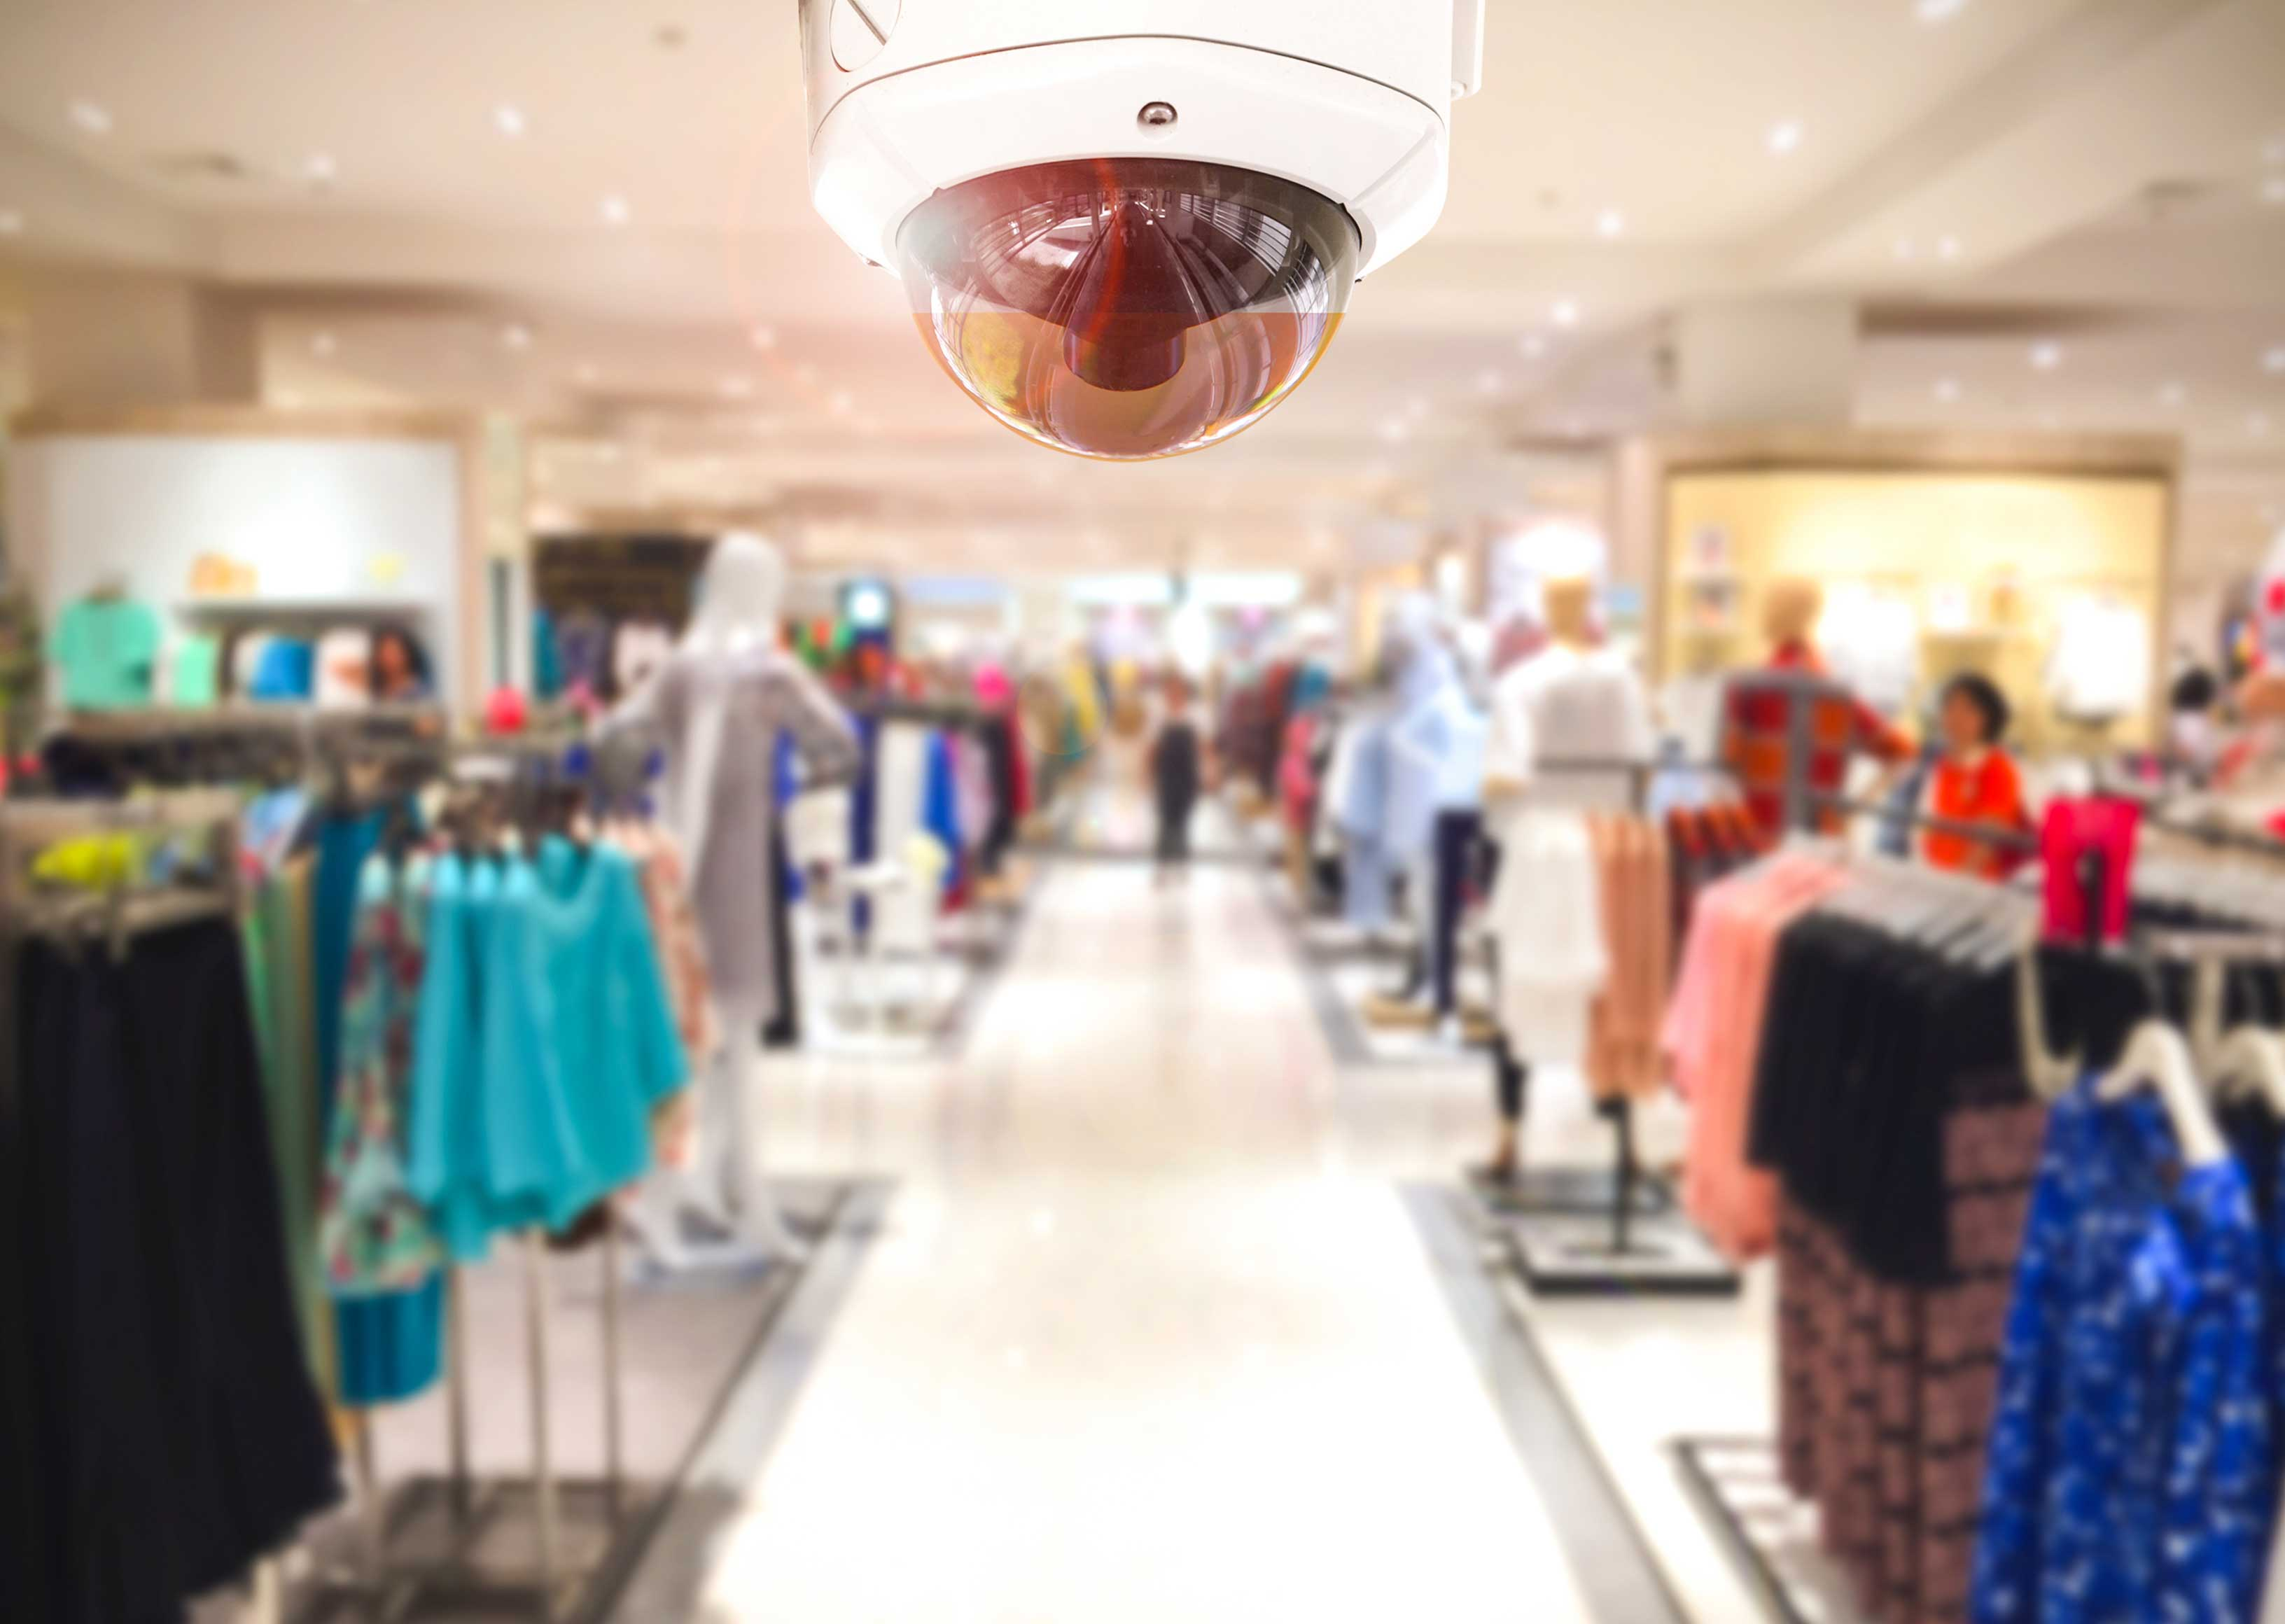 What You Should Know Before Updating Your Retail Video Surveillance System